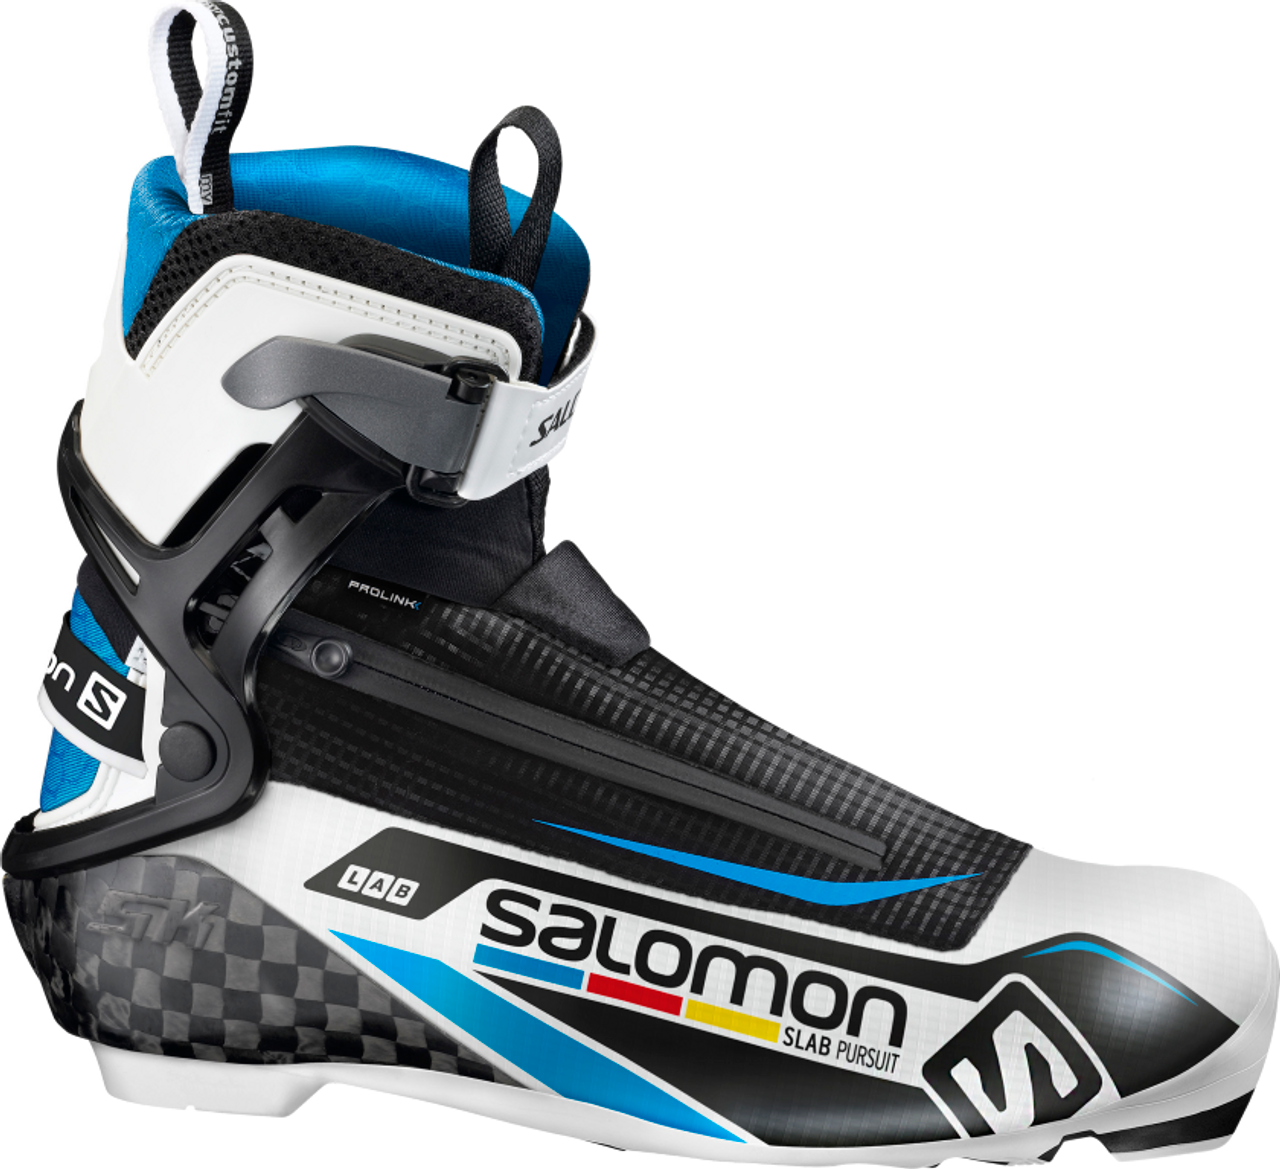 Salomon SLab Carbon Skate Boot Pilot Gear West Ski and Bike